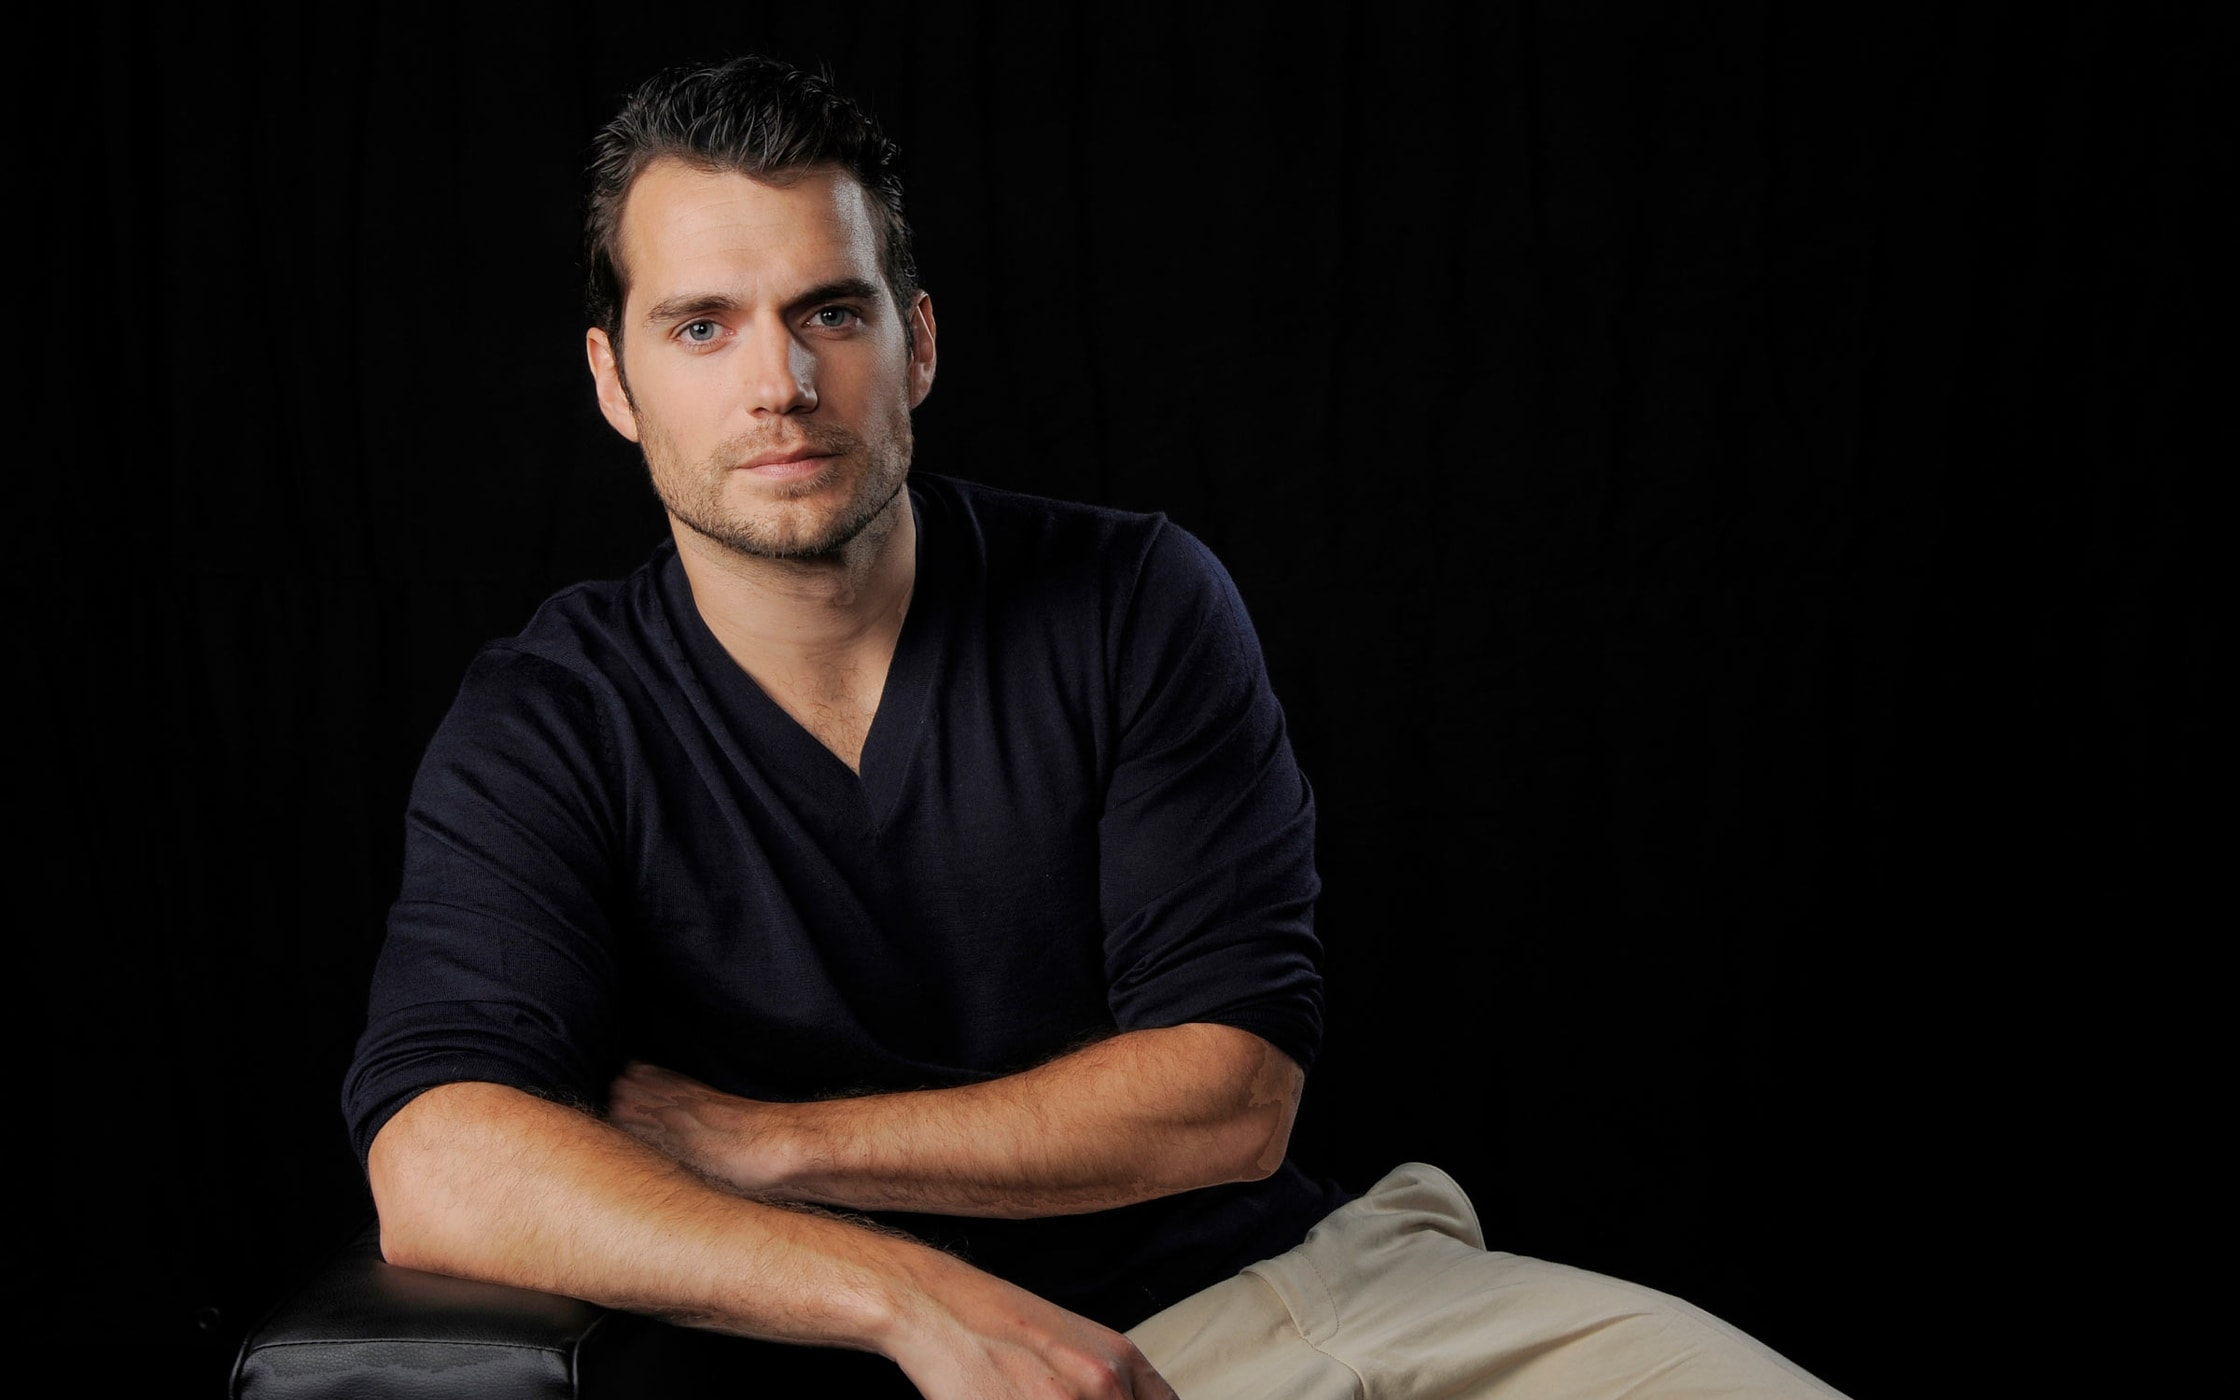 Henry Cavill Wide wallpapers